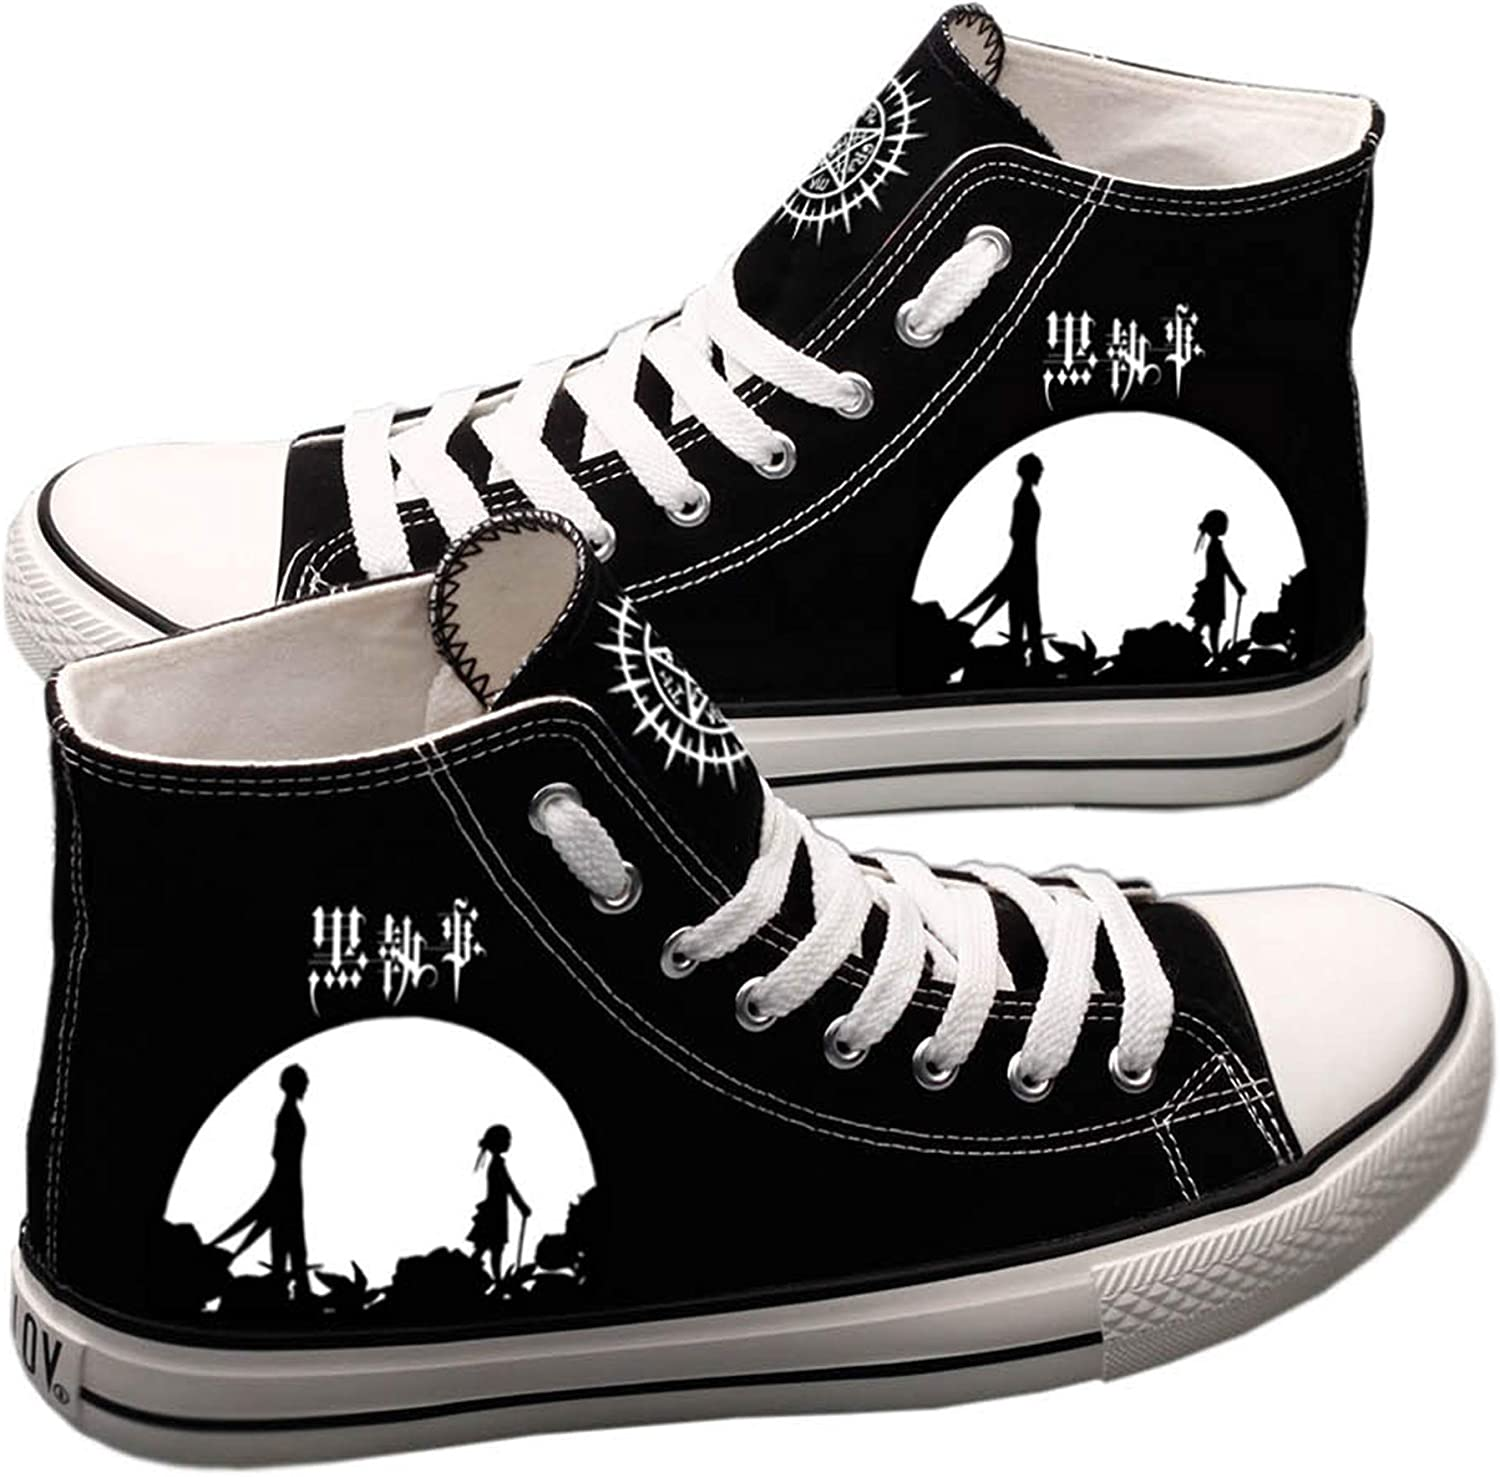 Antetok Black Butler Canvas shoes Hand-Painted Canvas shoes Casual Cosplay Sneakers Unisex Designs